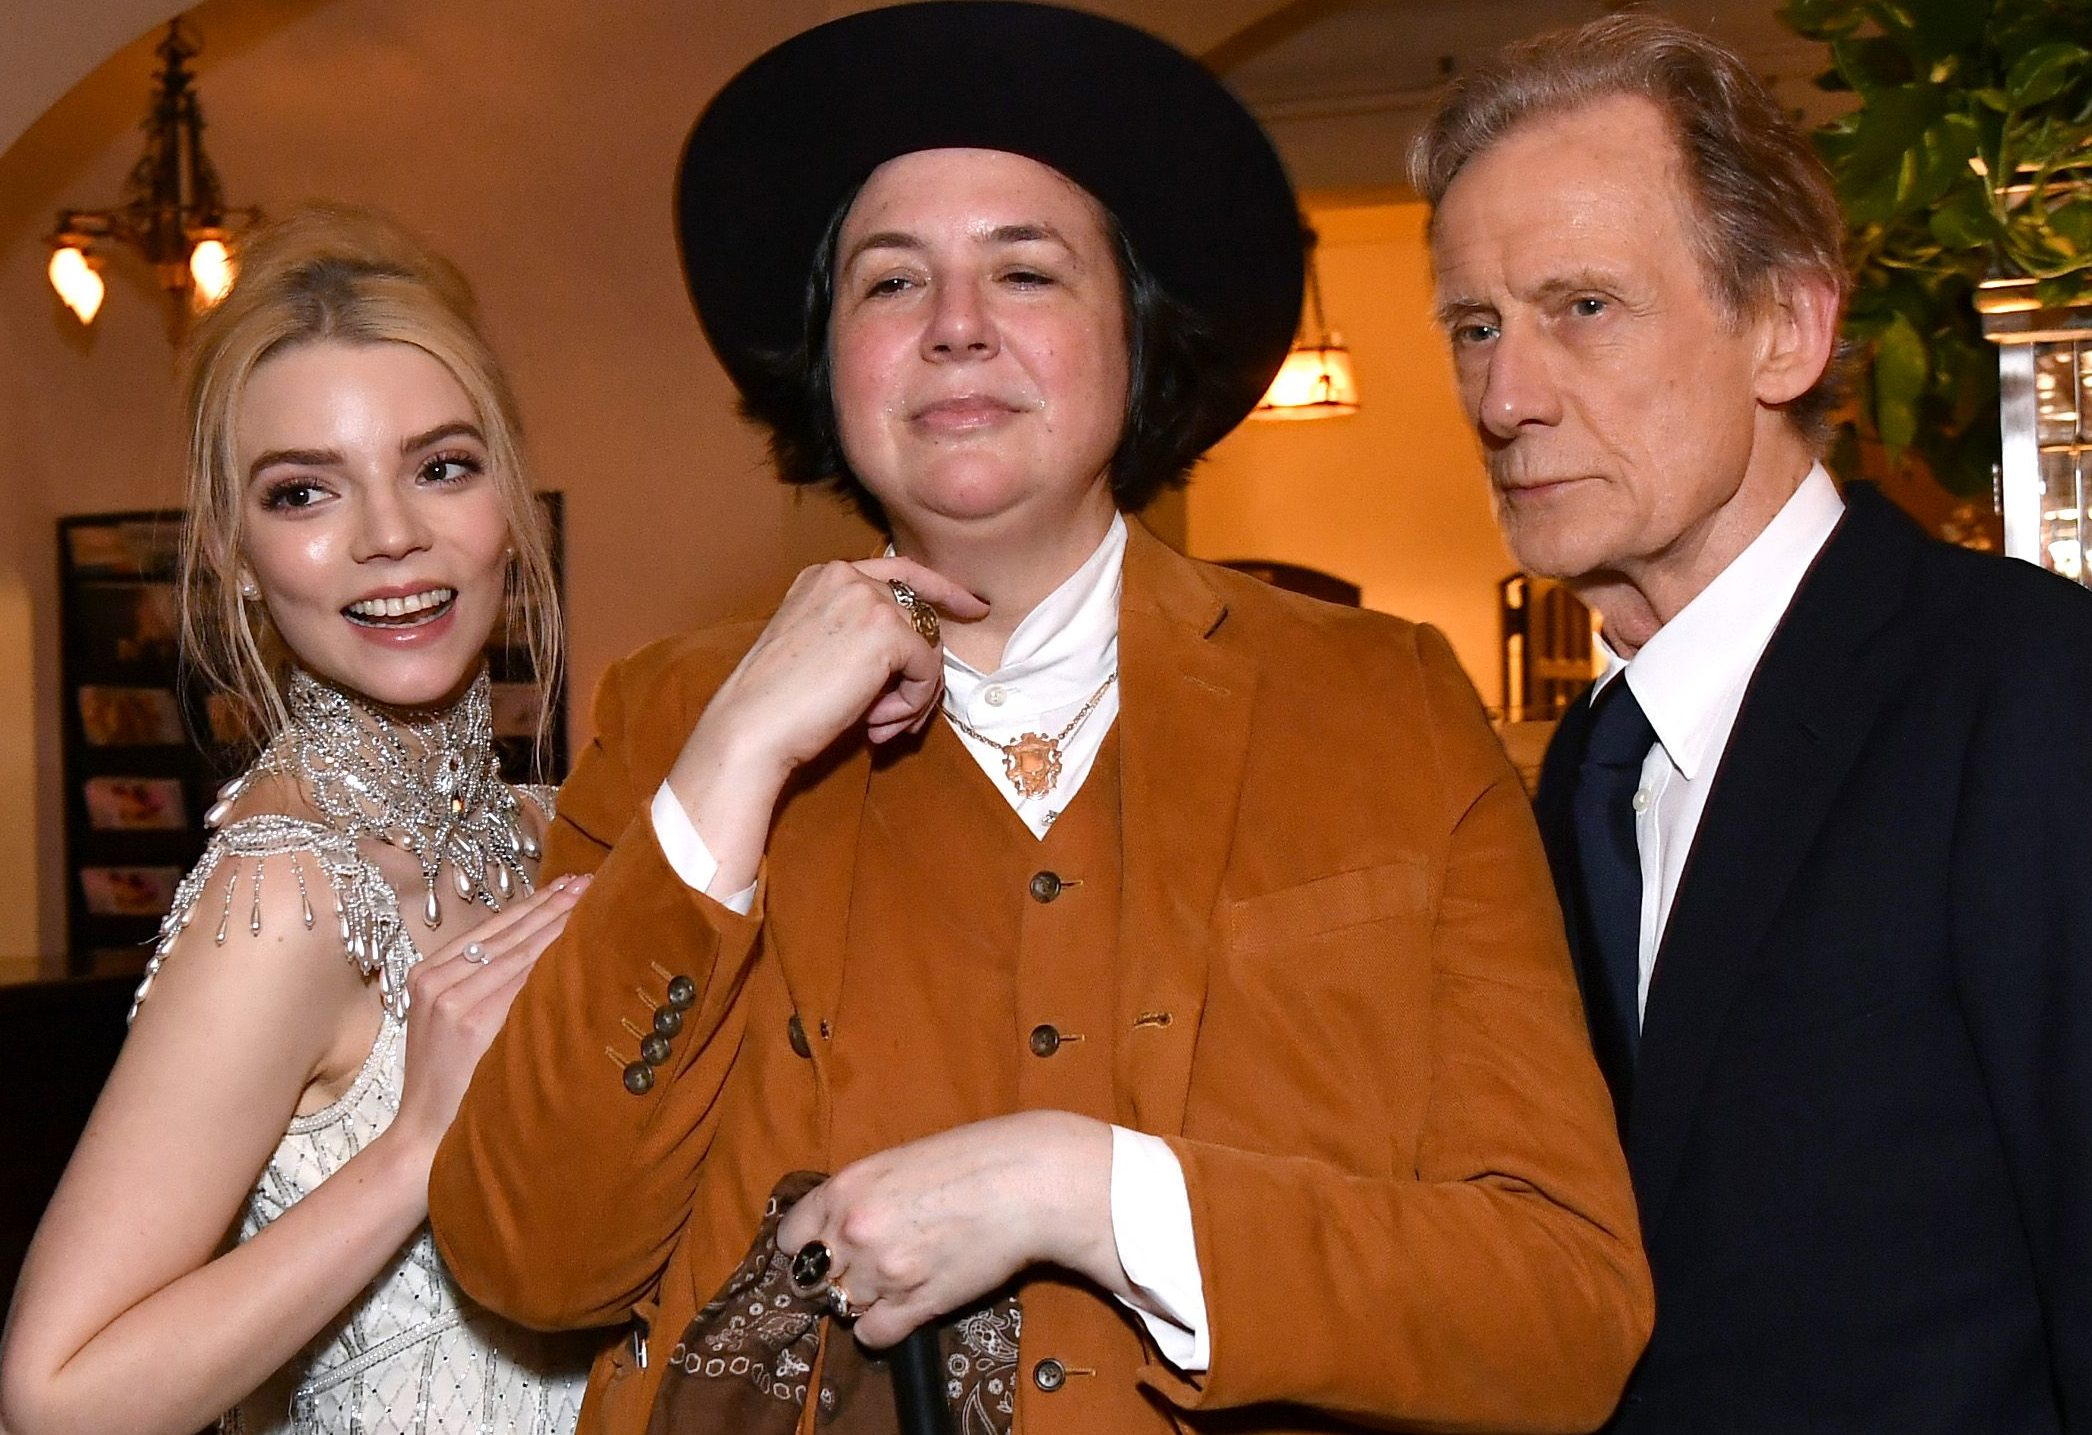 Anya Taylor-Joy, Autumn de Wilde and Bill Nighy at the Emma premiere after party in LA